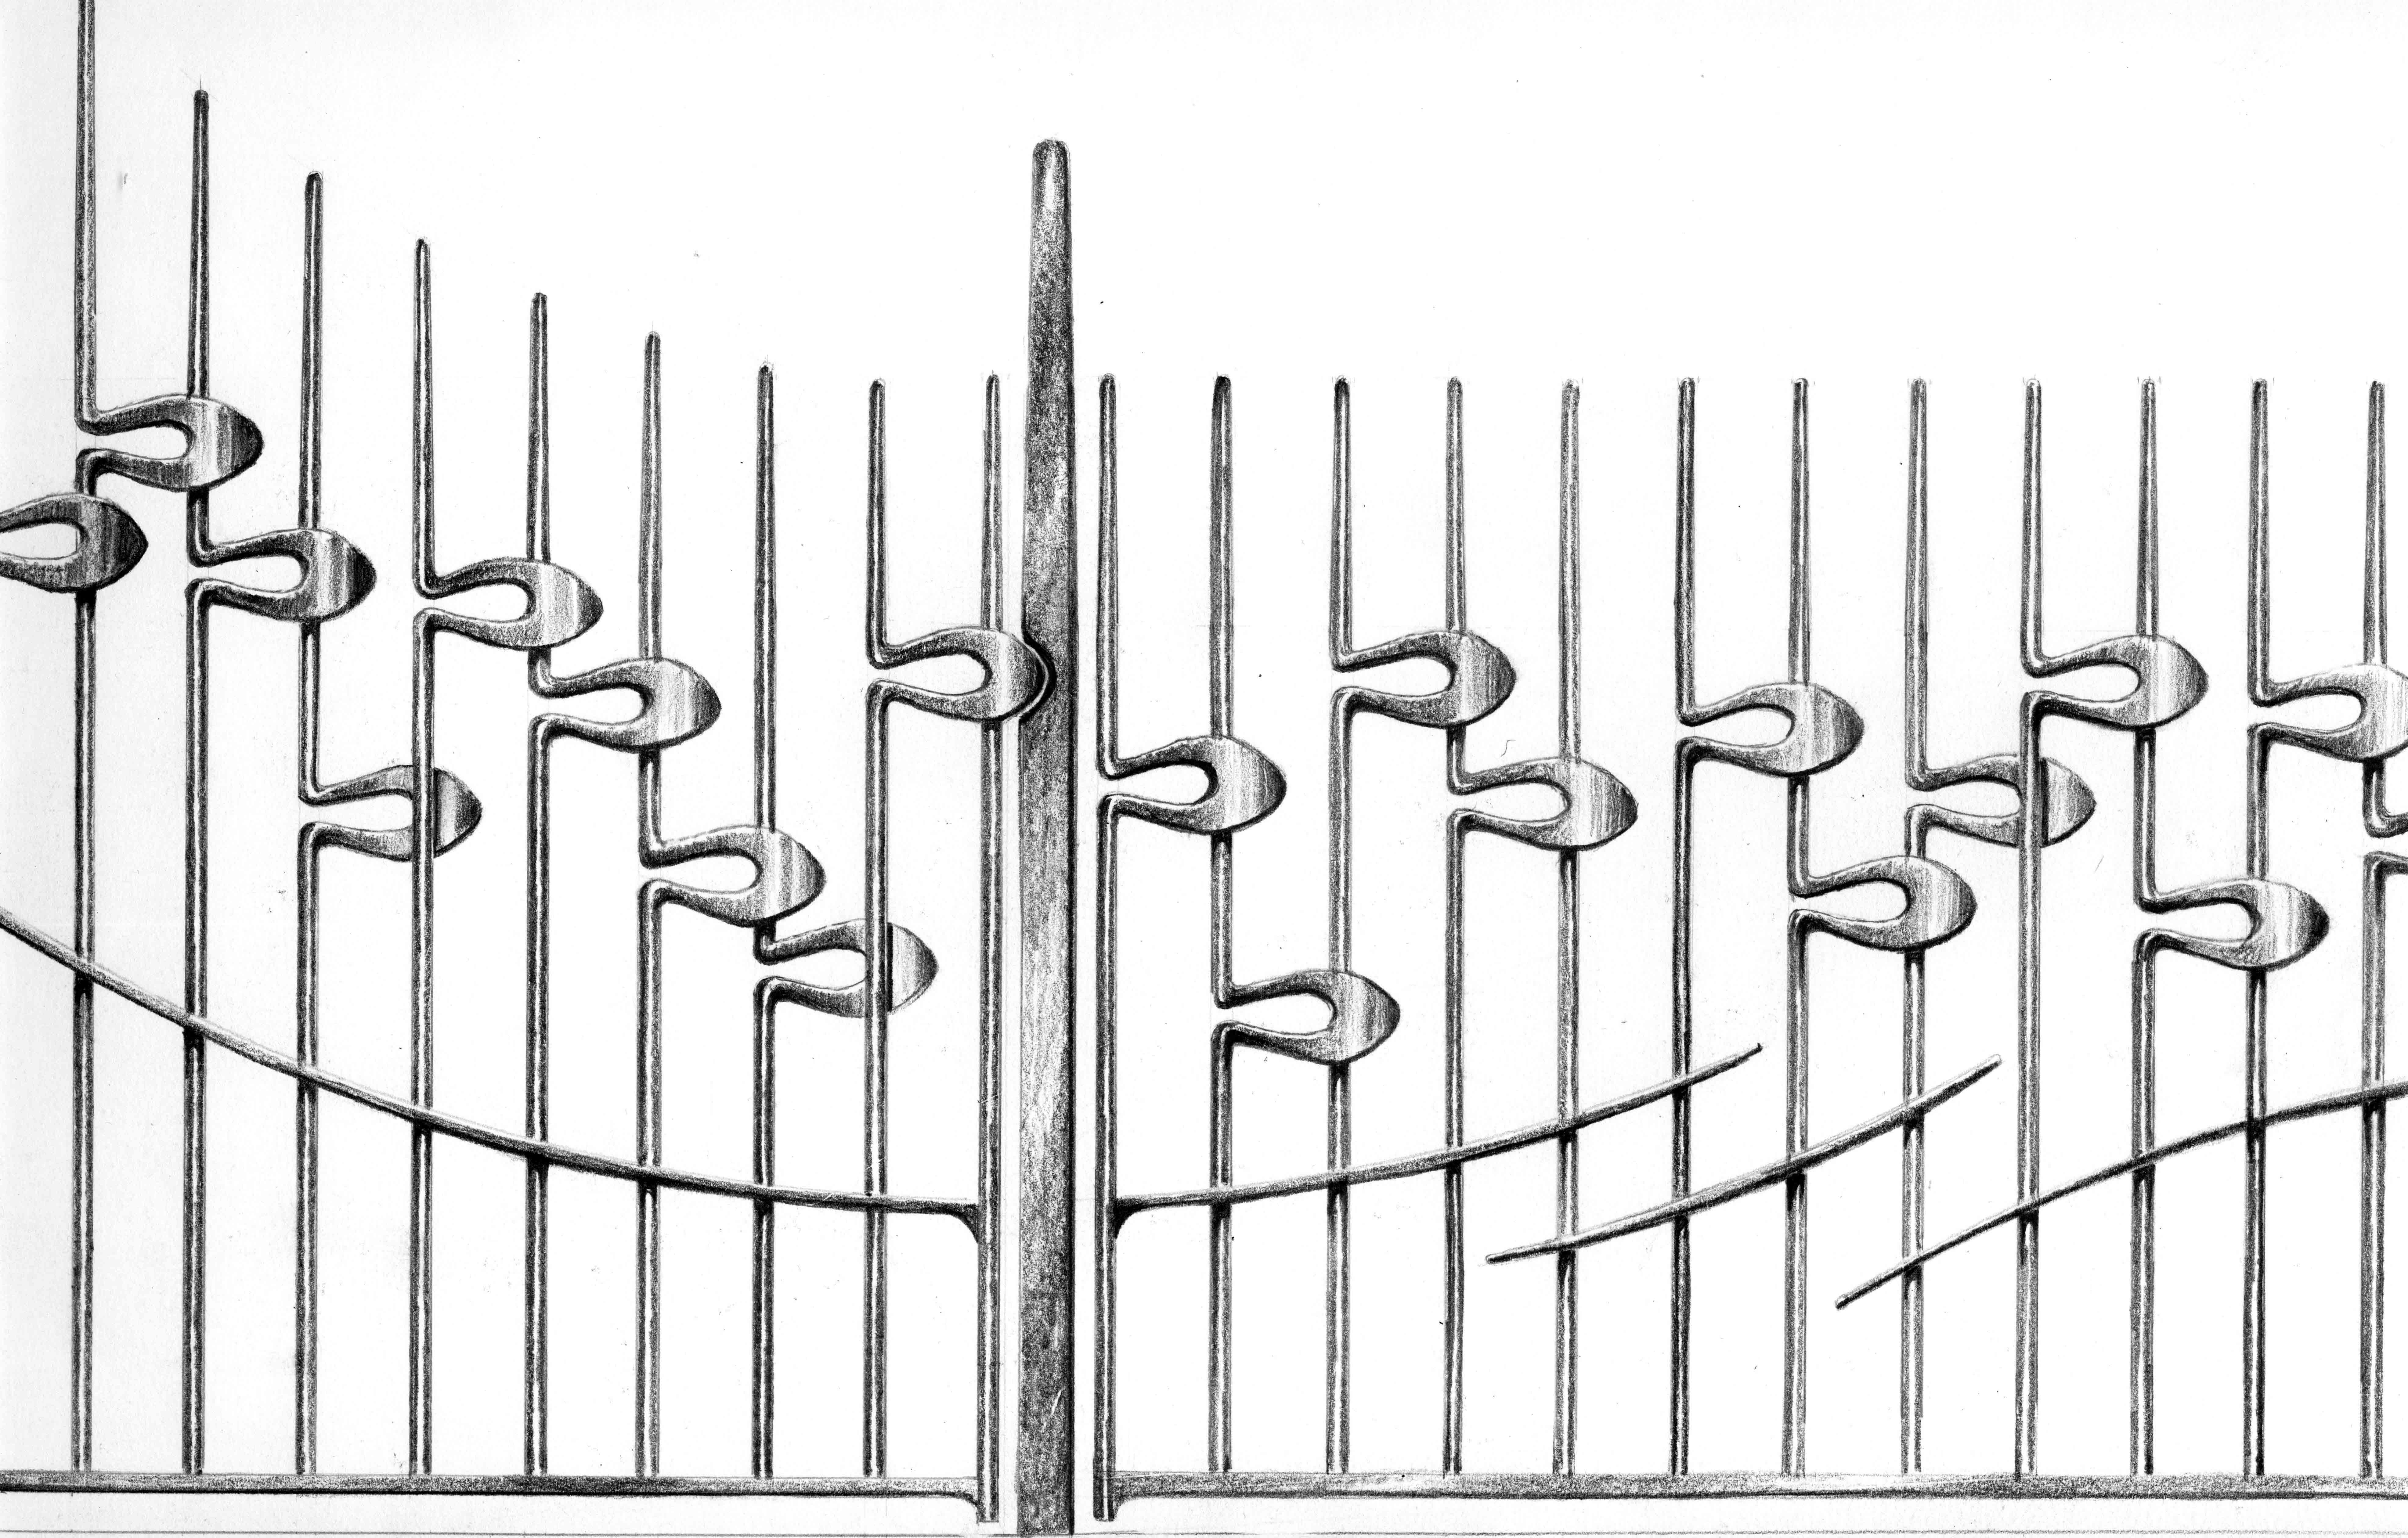 Drove Road railings design